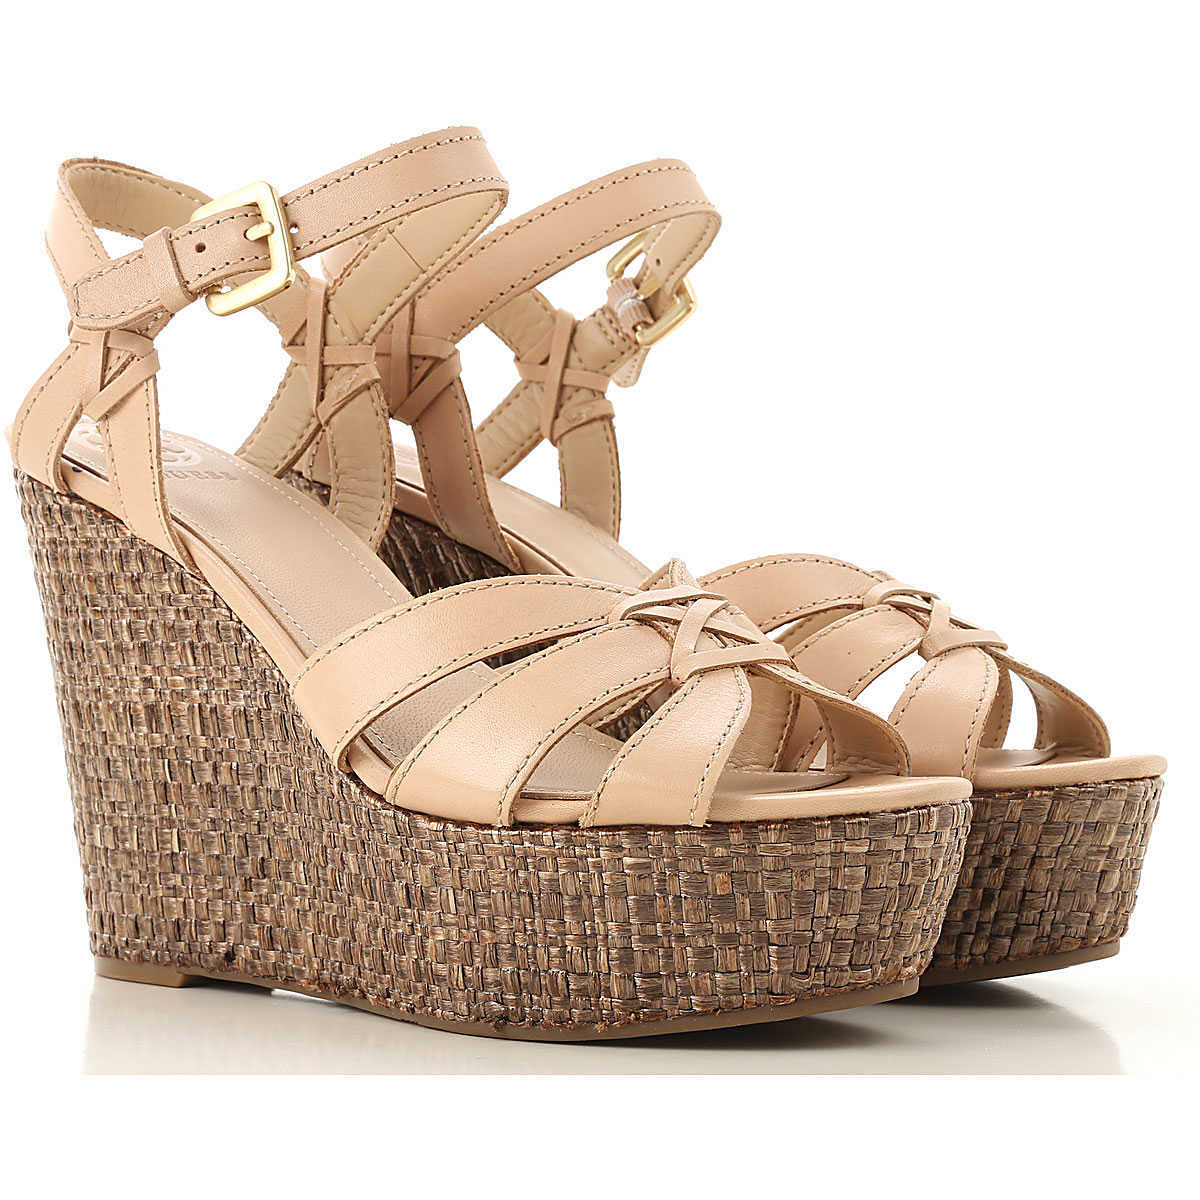 Guess Wedges for Women Beige Canada - GOOFASH - Womens HOUSE SHOES